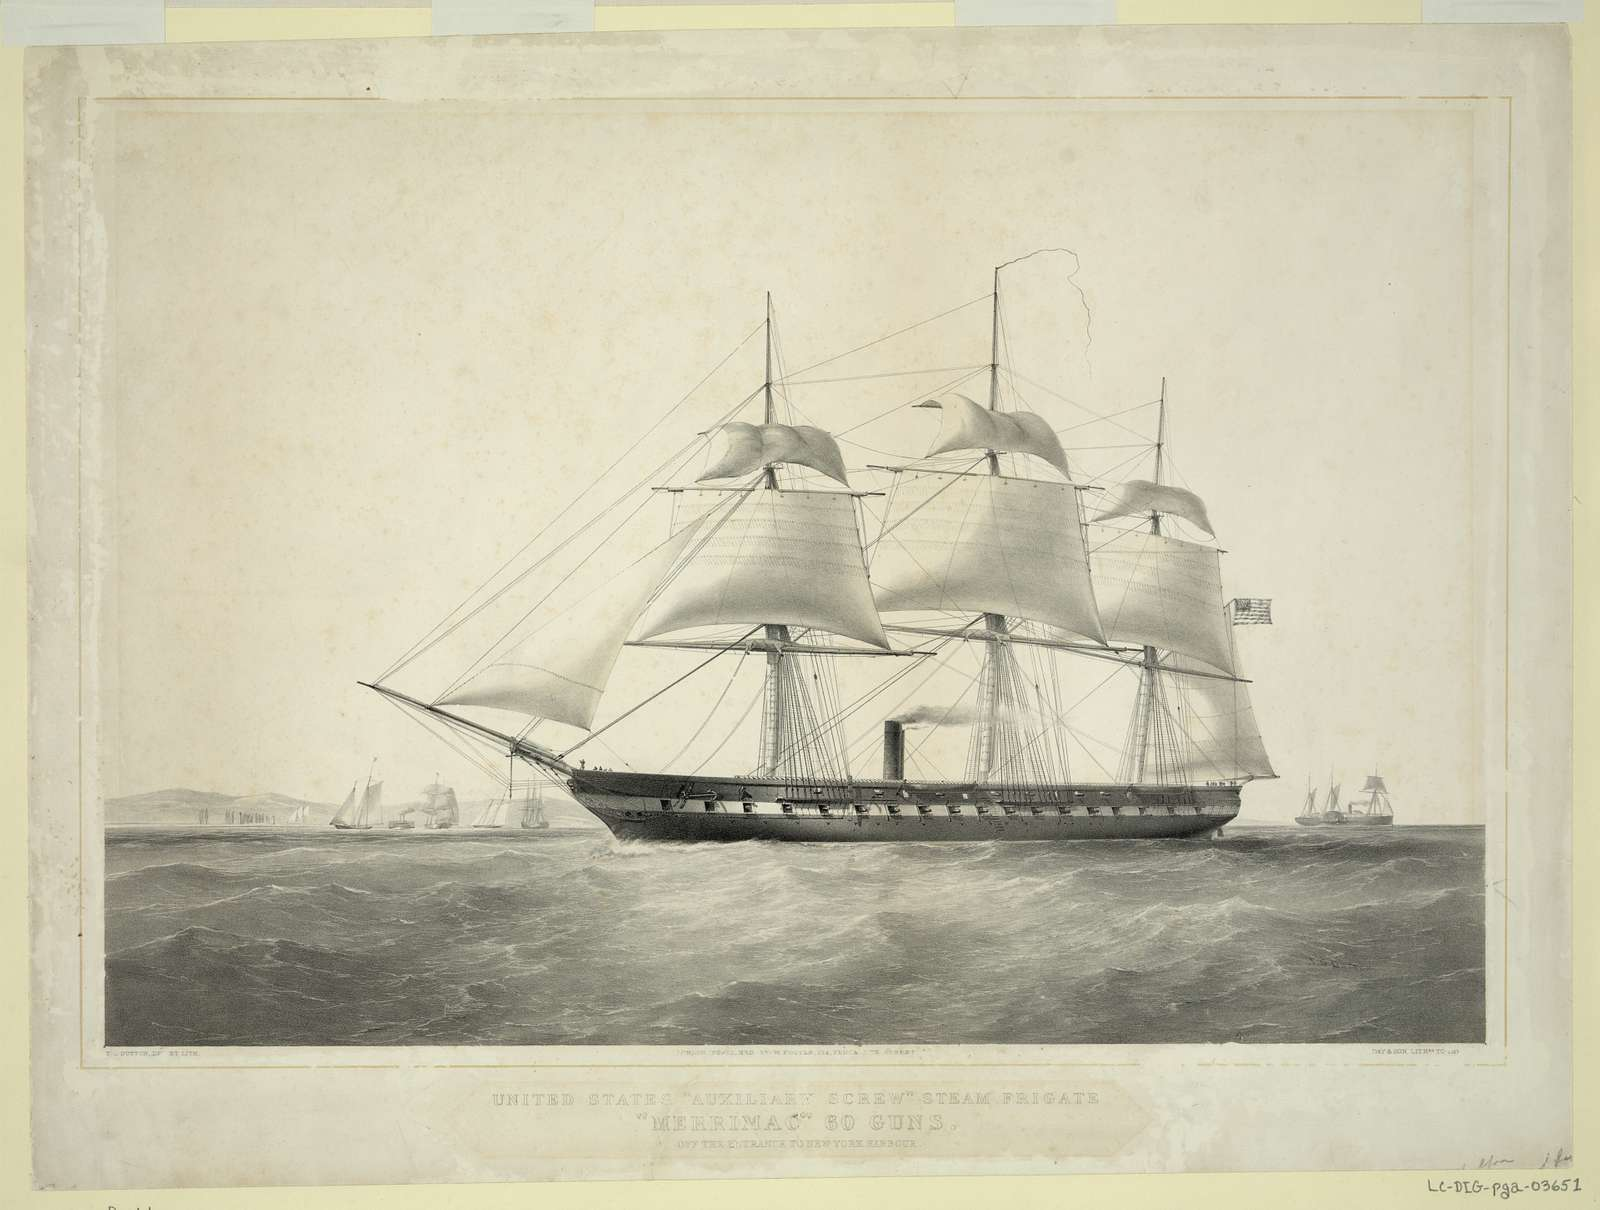 """United States """"Auxiliary Screw"""" steam frigate """"Merrimac"""" 60 guns. Off the entrance to New York harbour / T.G. Dutton, del et lith. ; Day & Son, Lithrs. to [the Queen]."""